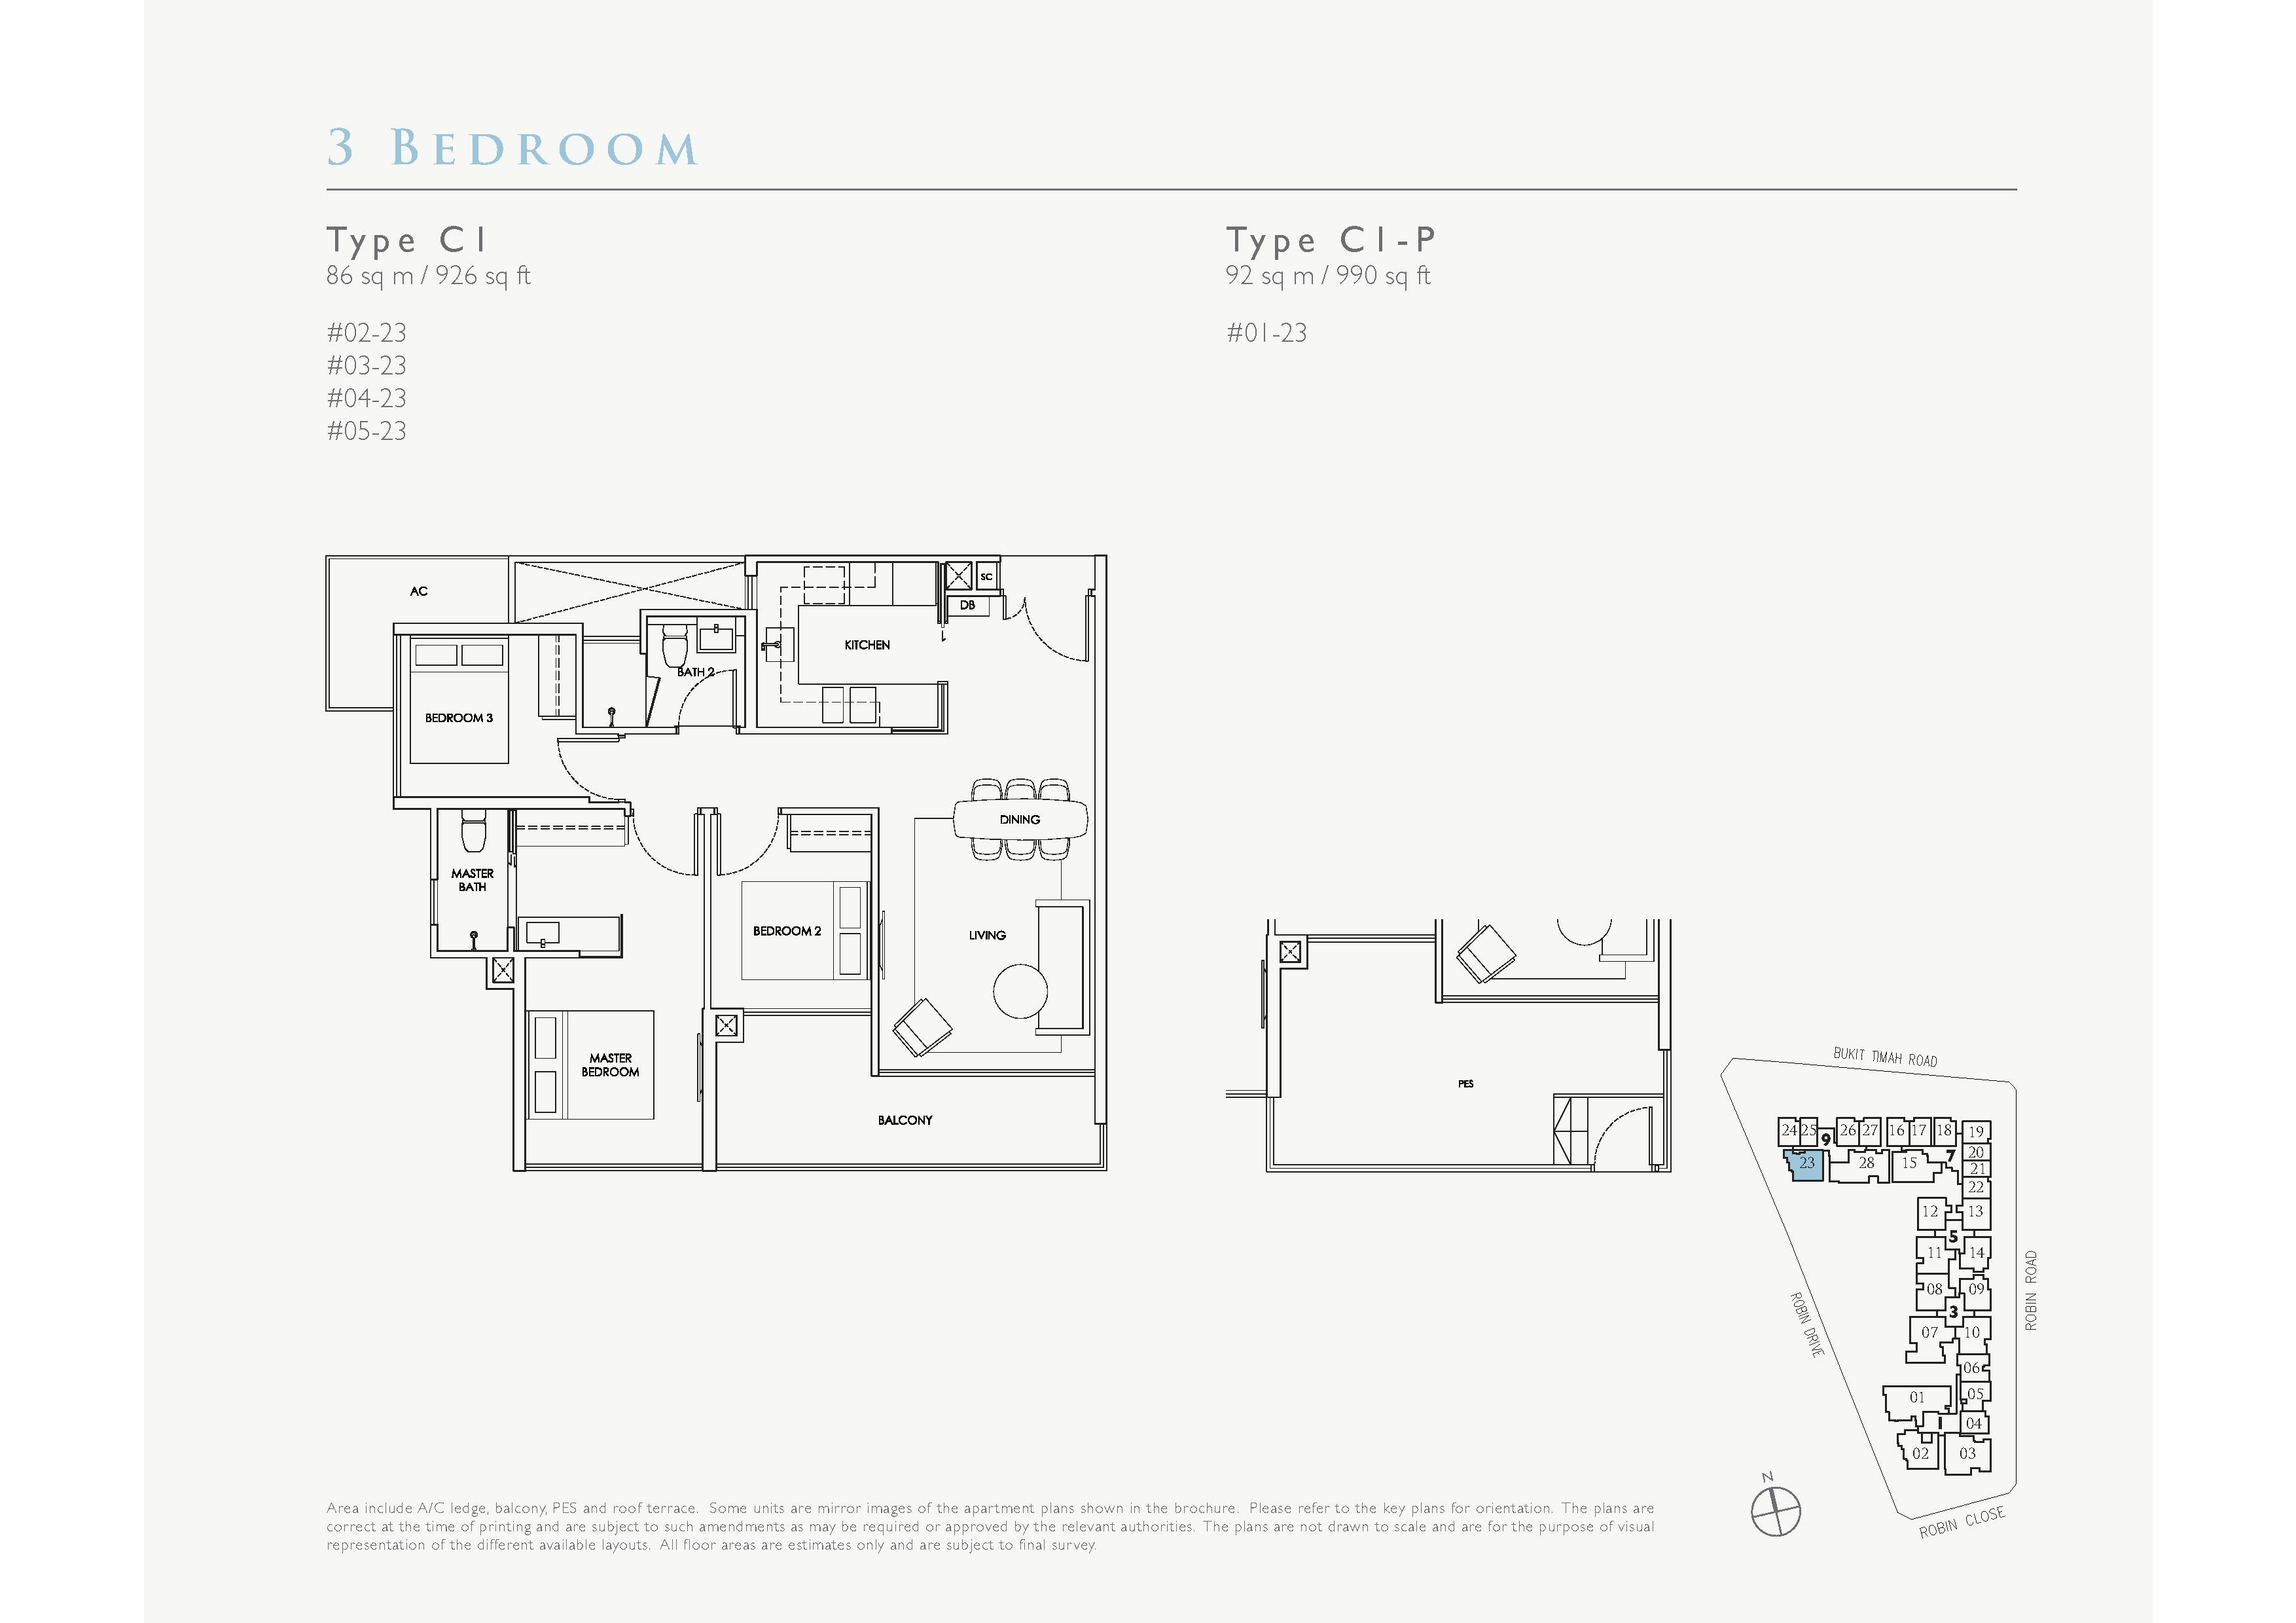 Robin Residences 3 Bedroom Floor Plans Type C1, C1-P